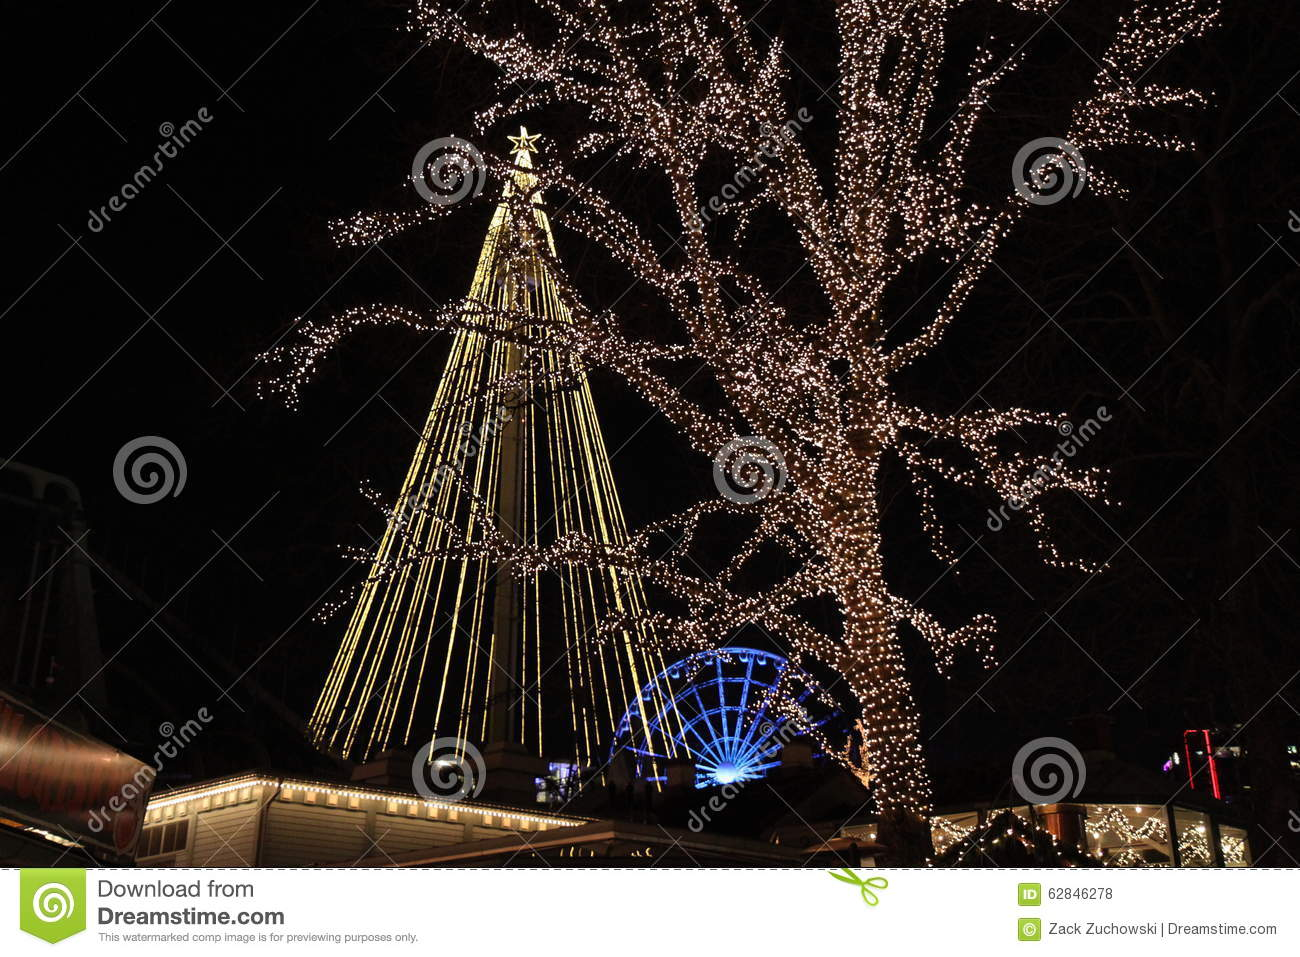 christmas trees and a ferris wheel - Christmas Ferris Wheel Decoration